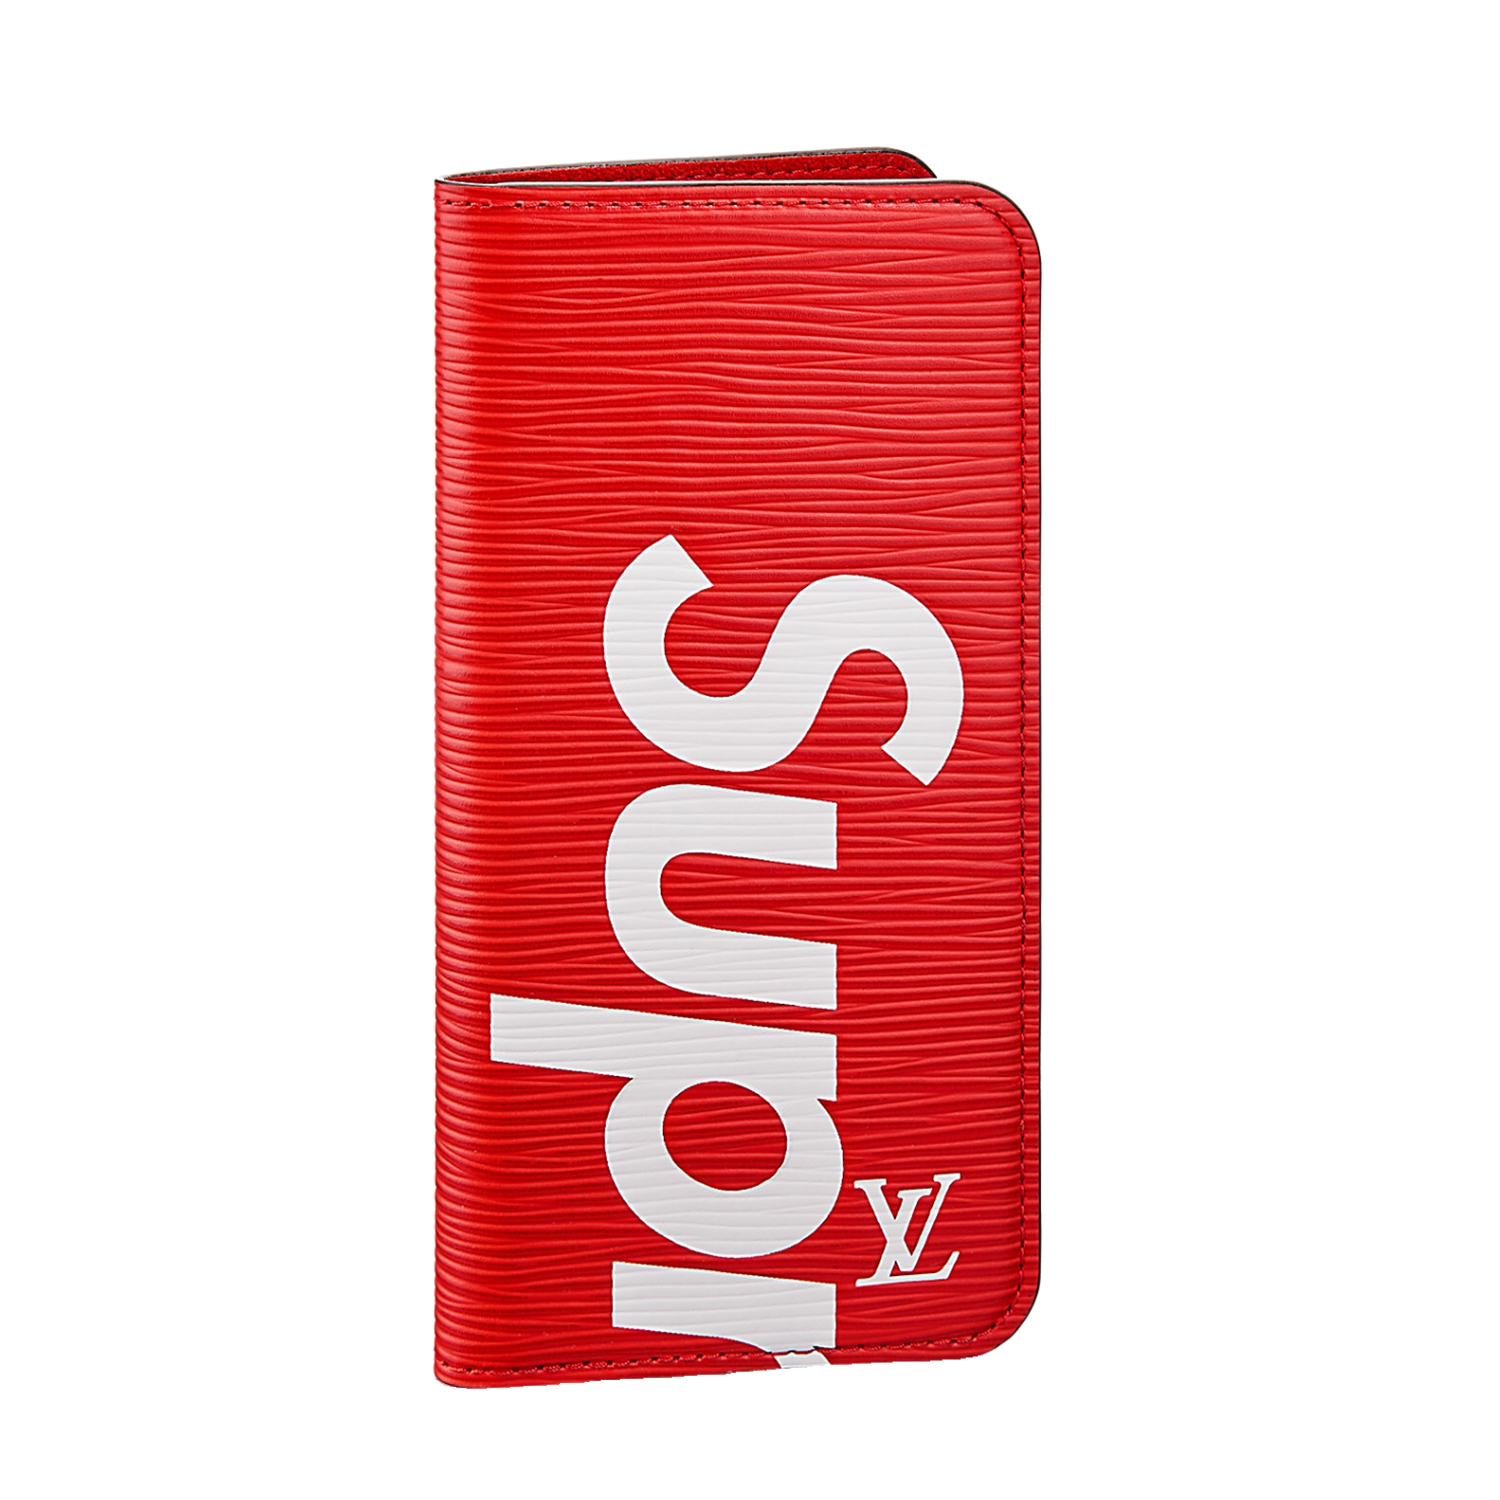 SUPREME IPHONE FOLIO 7 - €260 $380M64498EPI RED